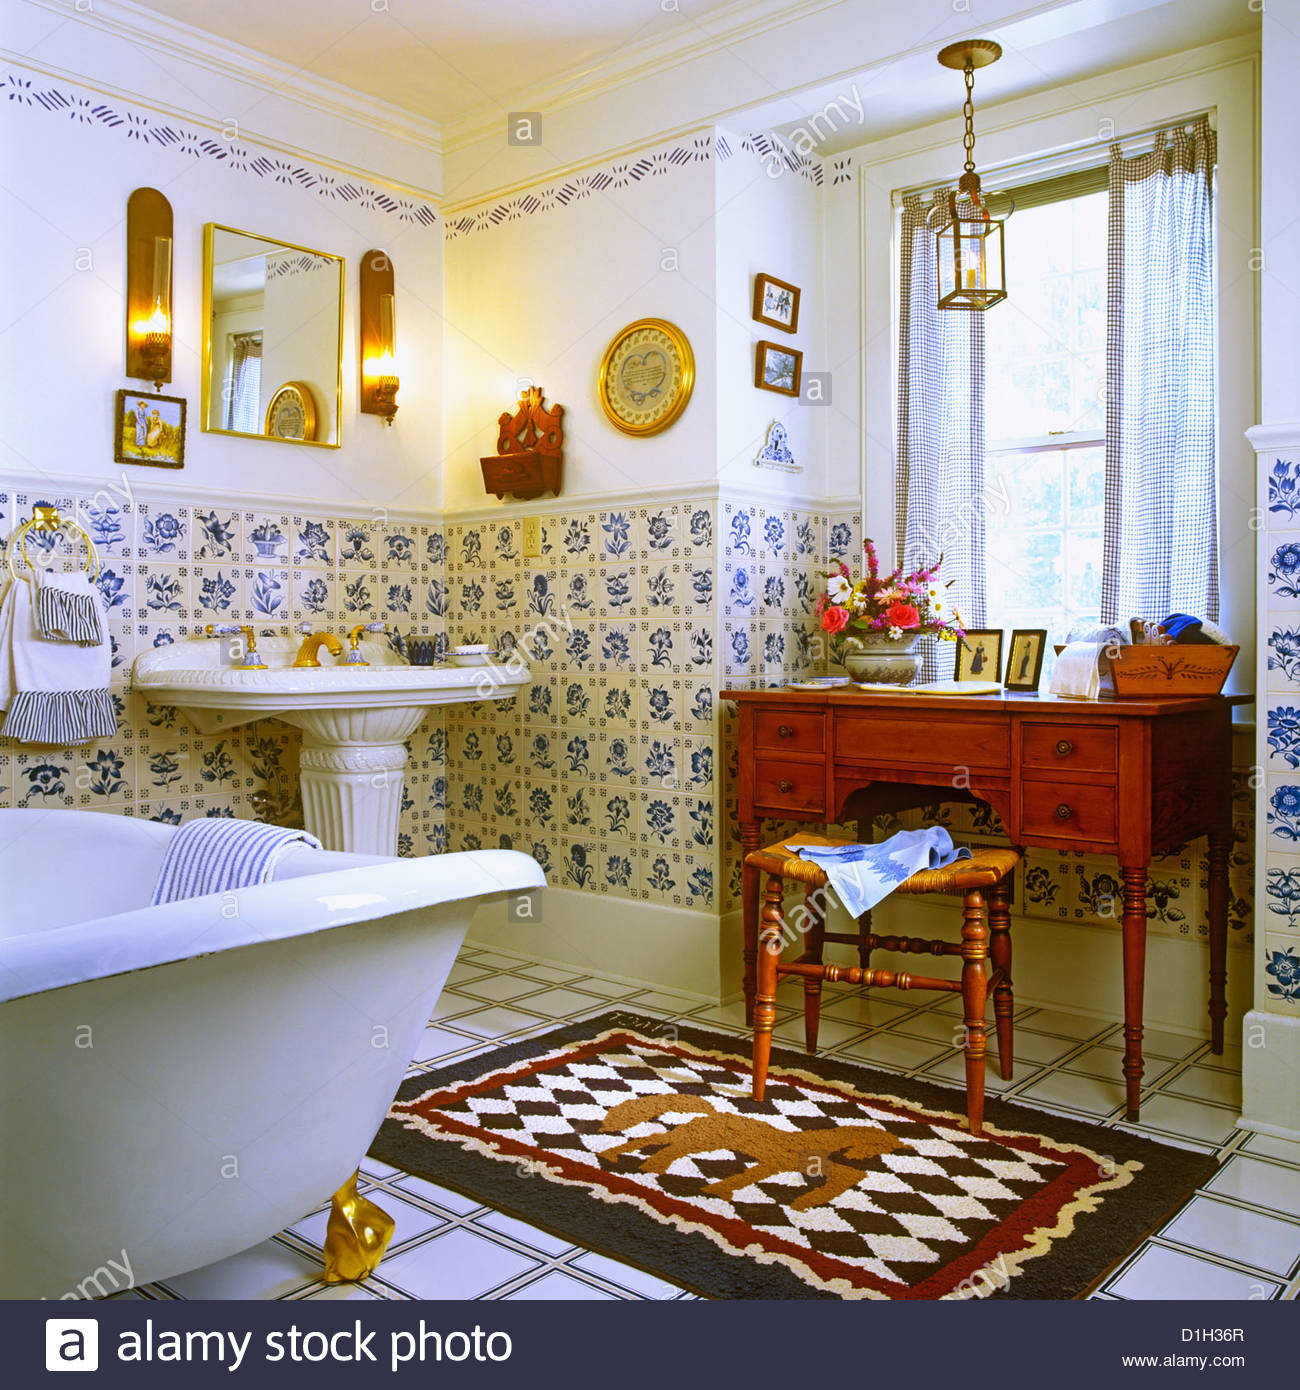 BATHROOMS Historic bathroom Blue and white Dutch tiles White textured pedestal sink on the left in background Blue red and. Bathrooms Historic Bathroom Blue And White Dutch Tiles White